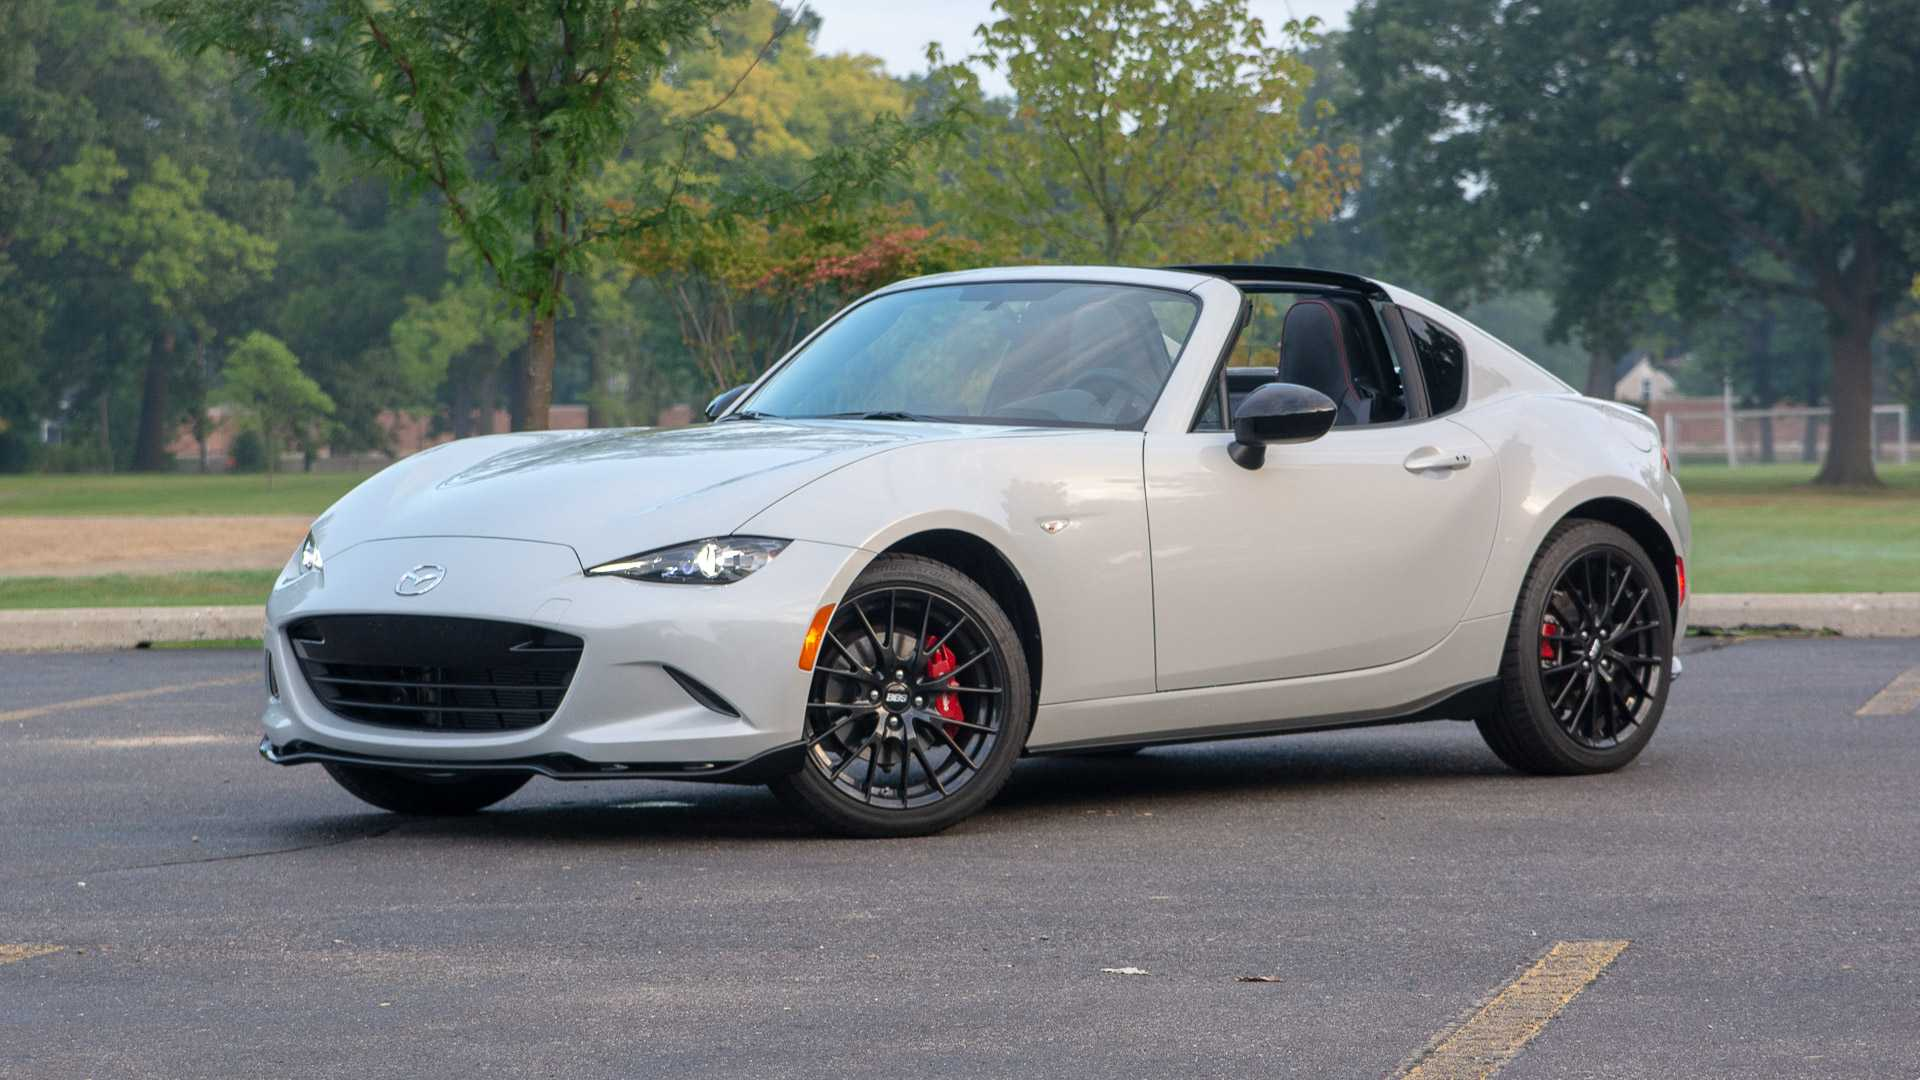 65 A 2019 Mazda Mx 5 Miata Review And Release Date